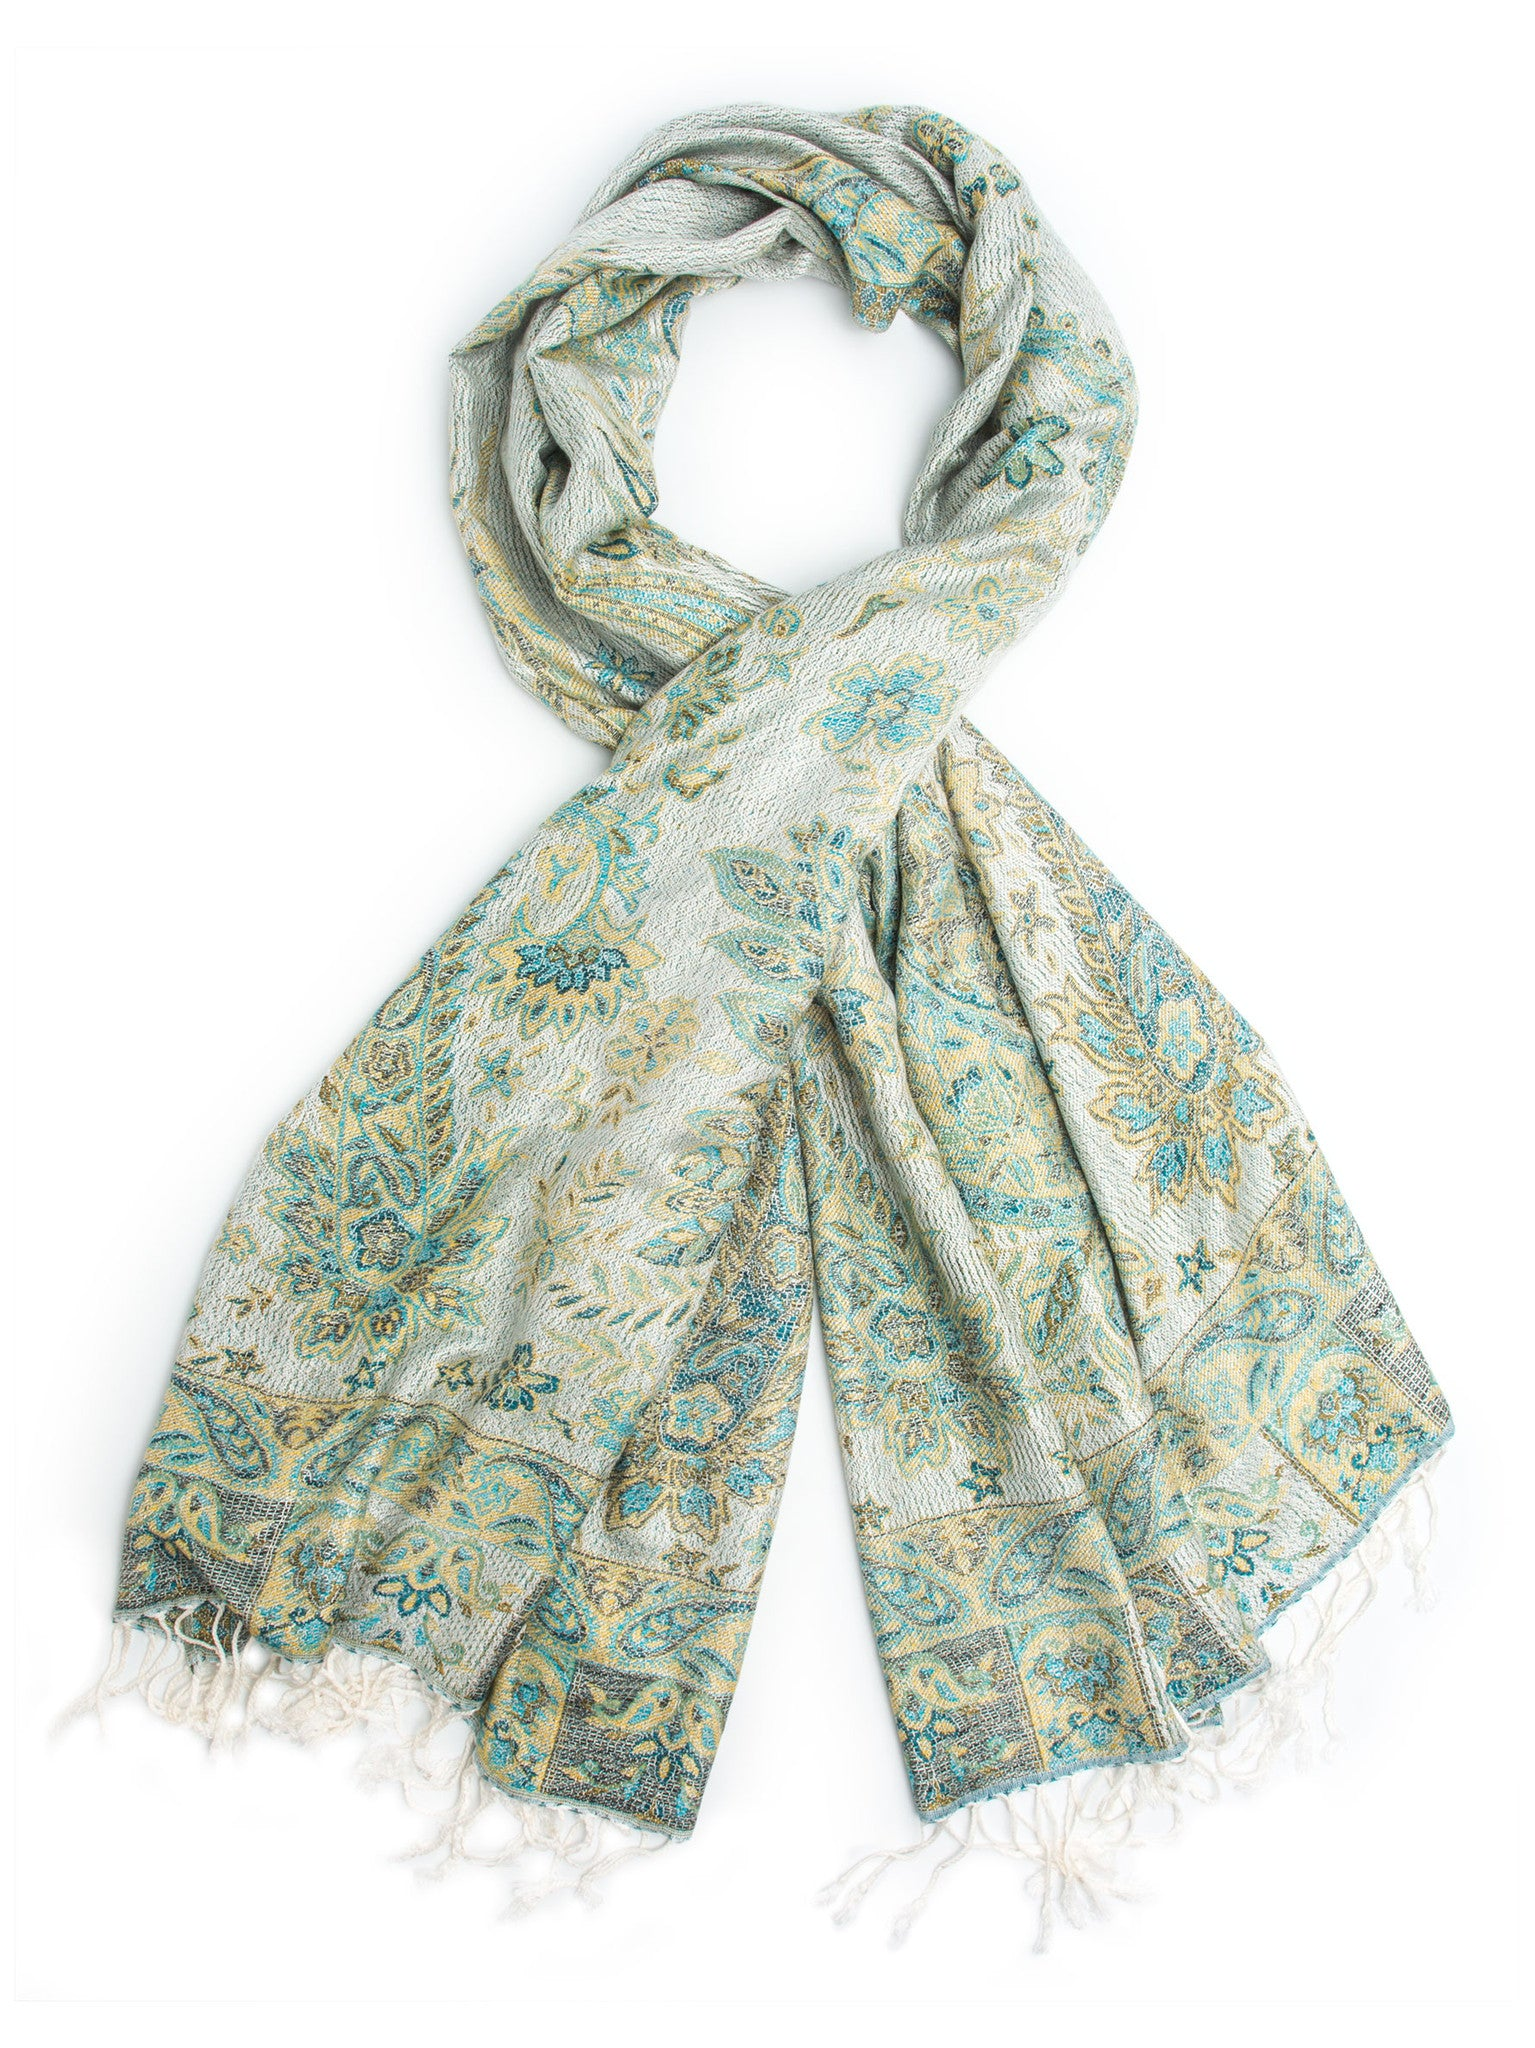 52c68196a Scarves - Jyati Scarf, Pashmina Indian Paisley Traditional Jacquard Scarf - hand  made in India